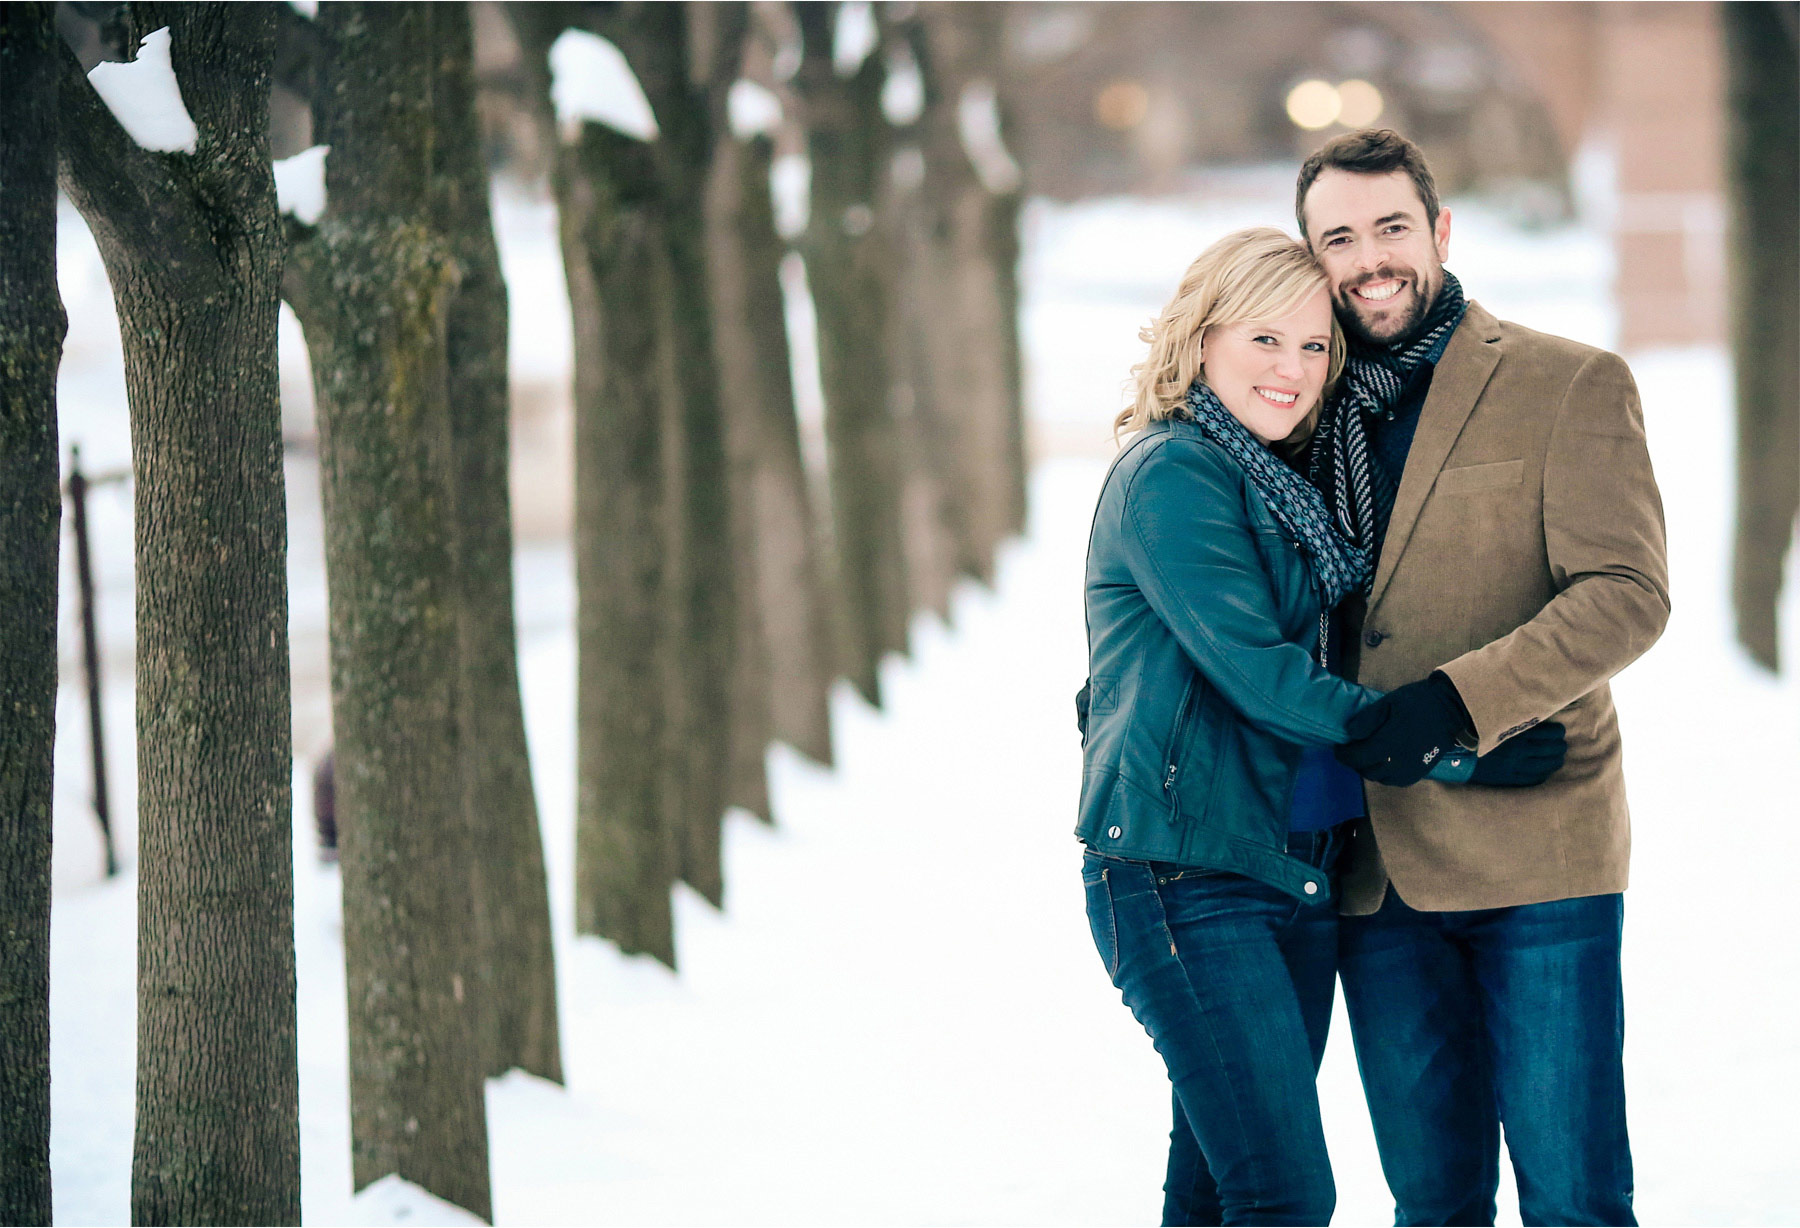 04-Edina-Minnesota-Wedding-Photographer-by-Andrew-Vick-Photography-Winter-Engagement-Bride-Groom-Snow-Embrace-Vintage-Heather-and-Rob.jpg